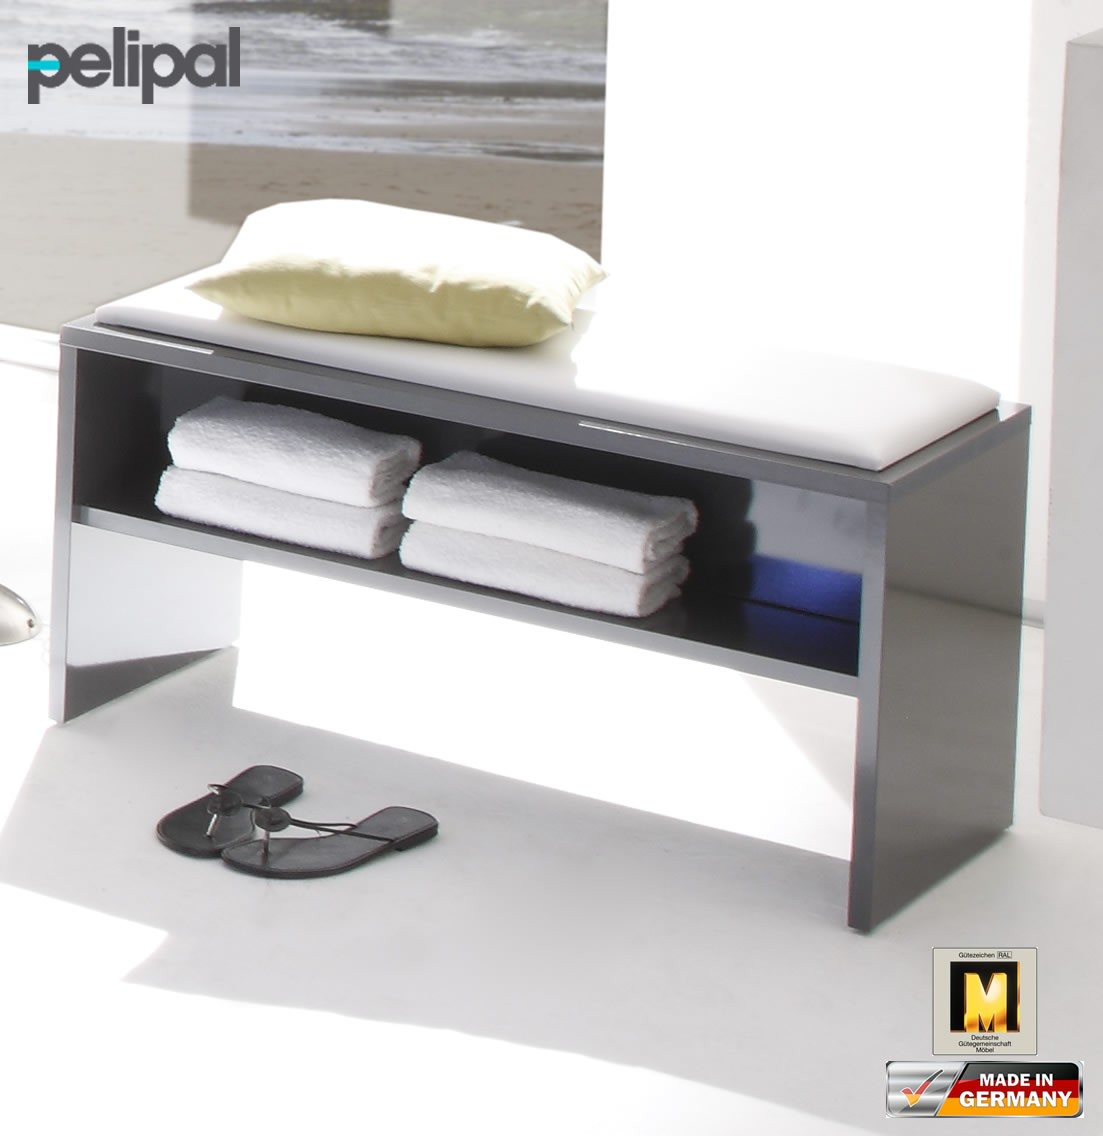 pelipal solitaire 7005 sitzbank 60 cm oder 90 cm rd sb 01 rd sb 02 impuls home. Black Bedroom Furniture Sets. Home Design Ideas